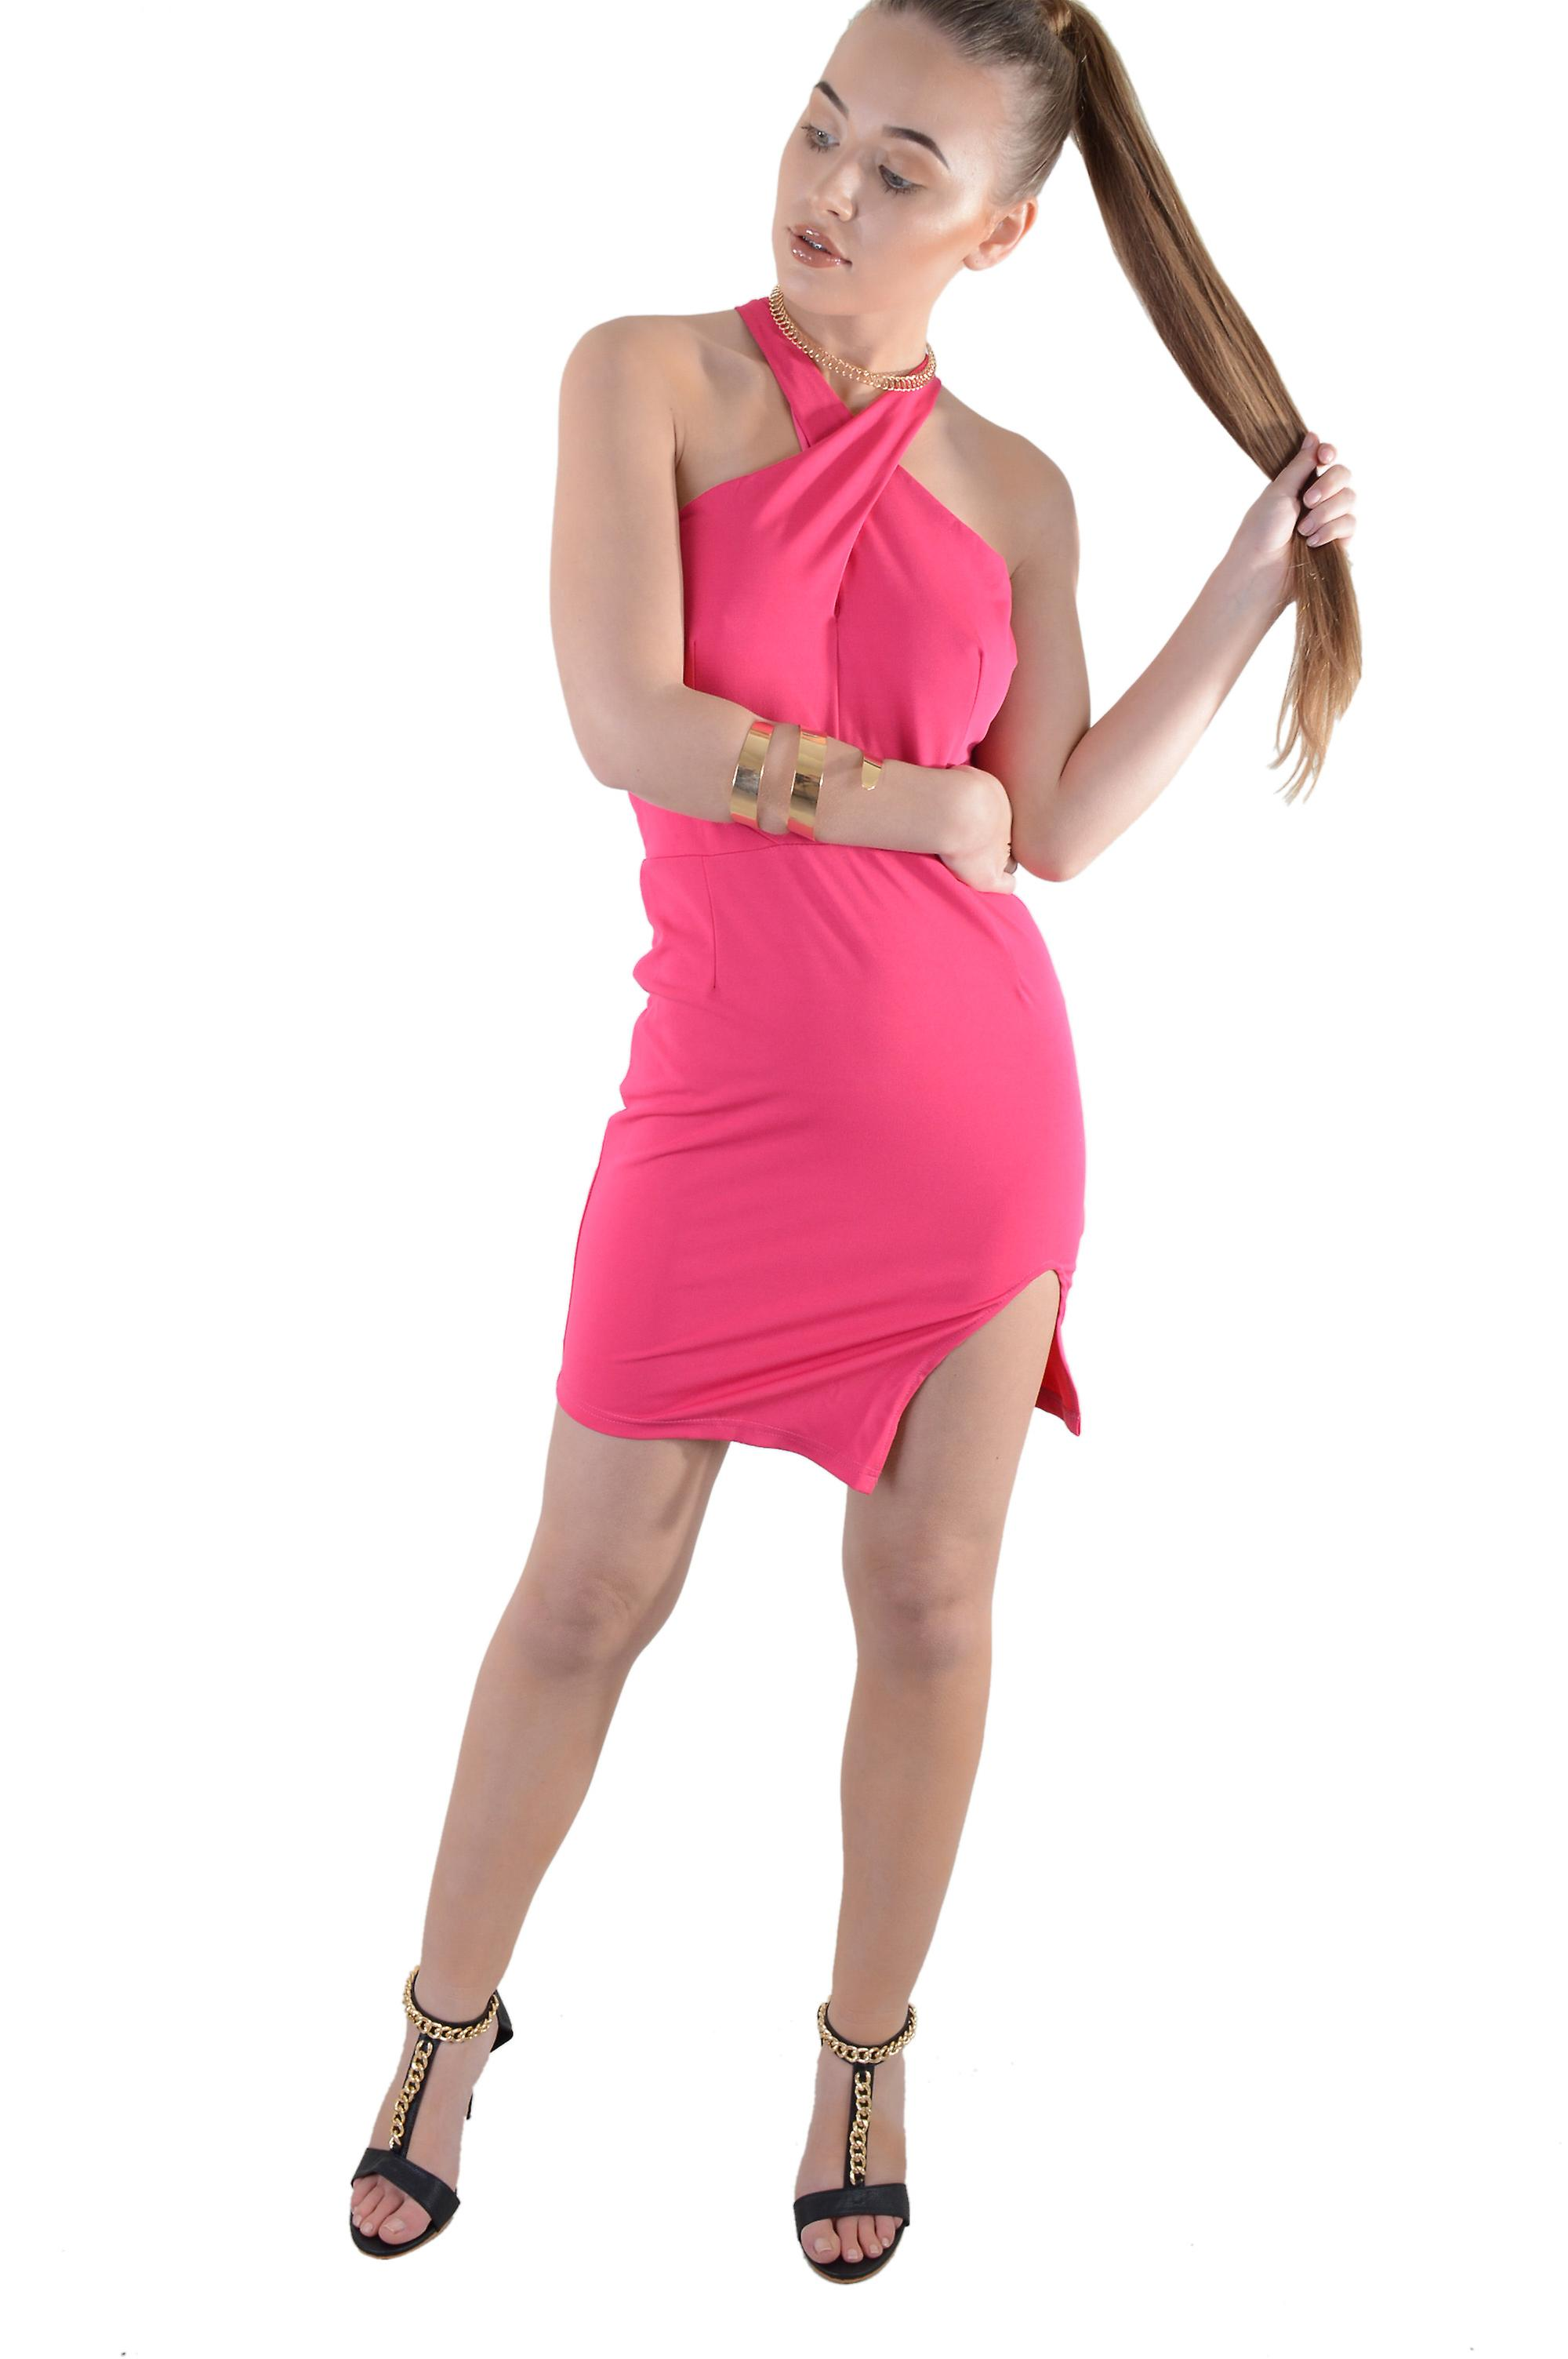 Lovemystyle Hot Pink Halterneck Mini Dress With Cut Out Back